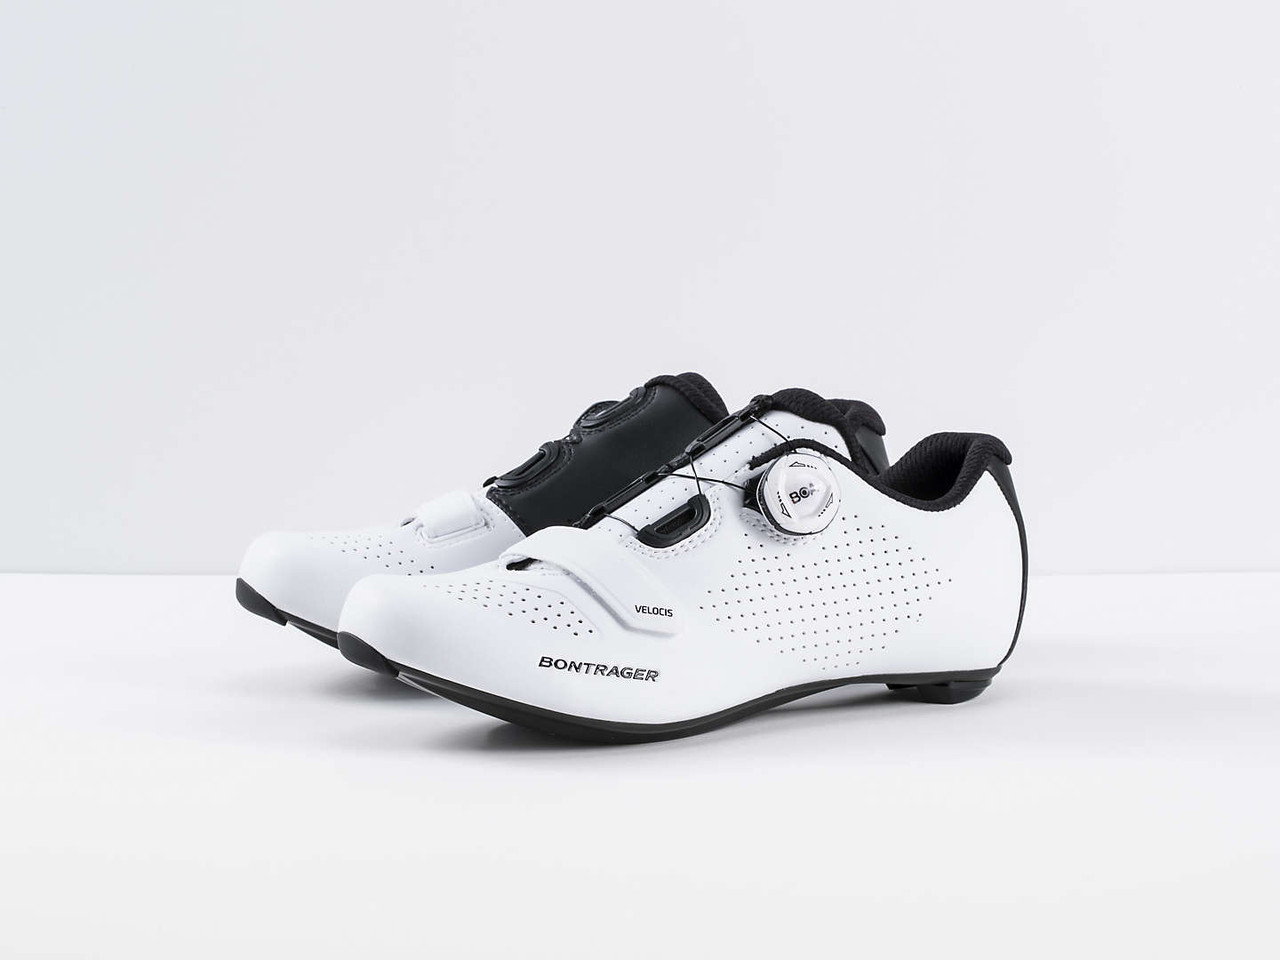 Bontrager Velocis Women's Road Shoe - White